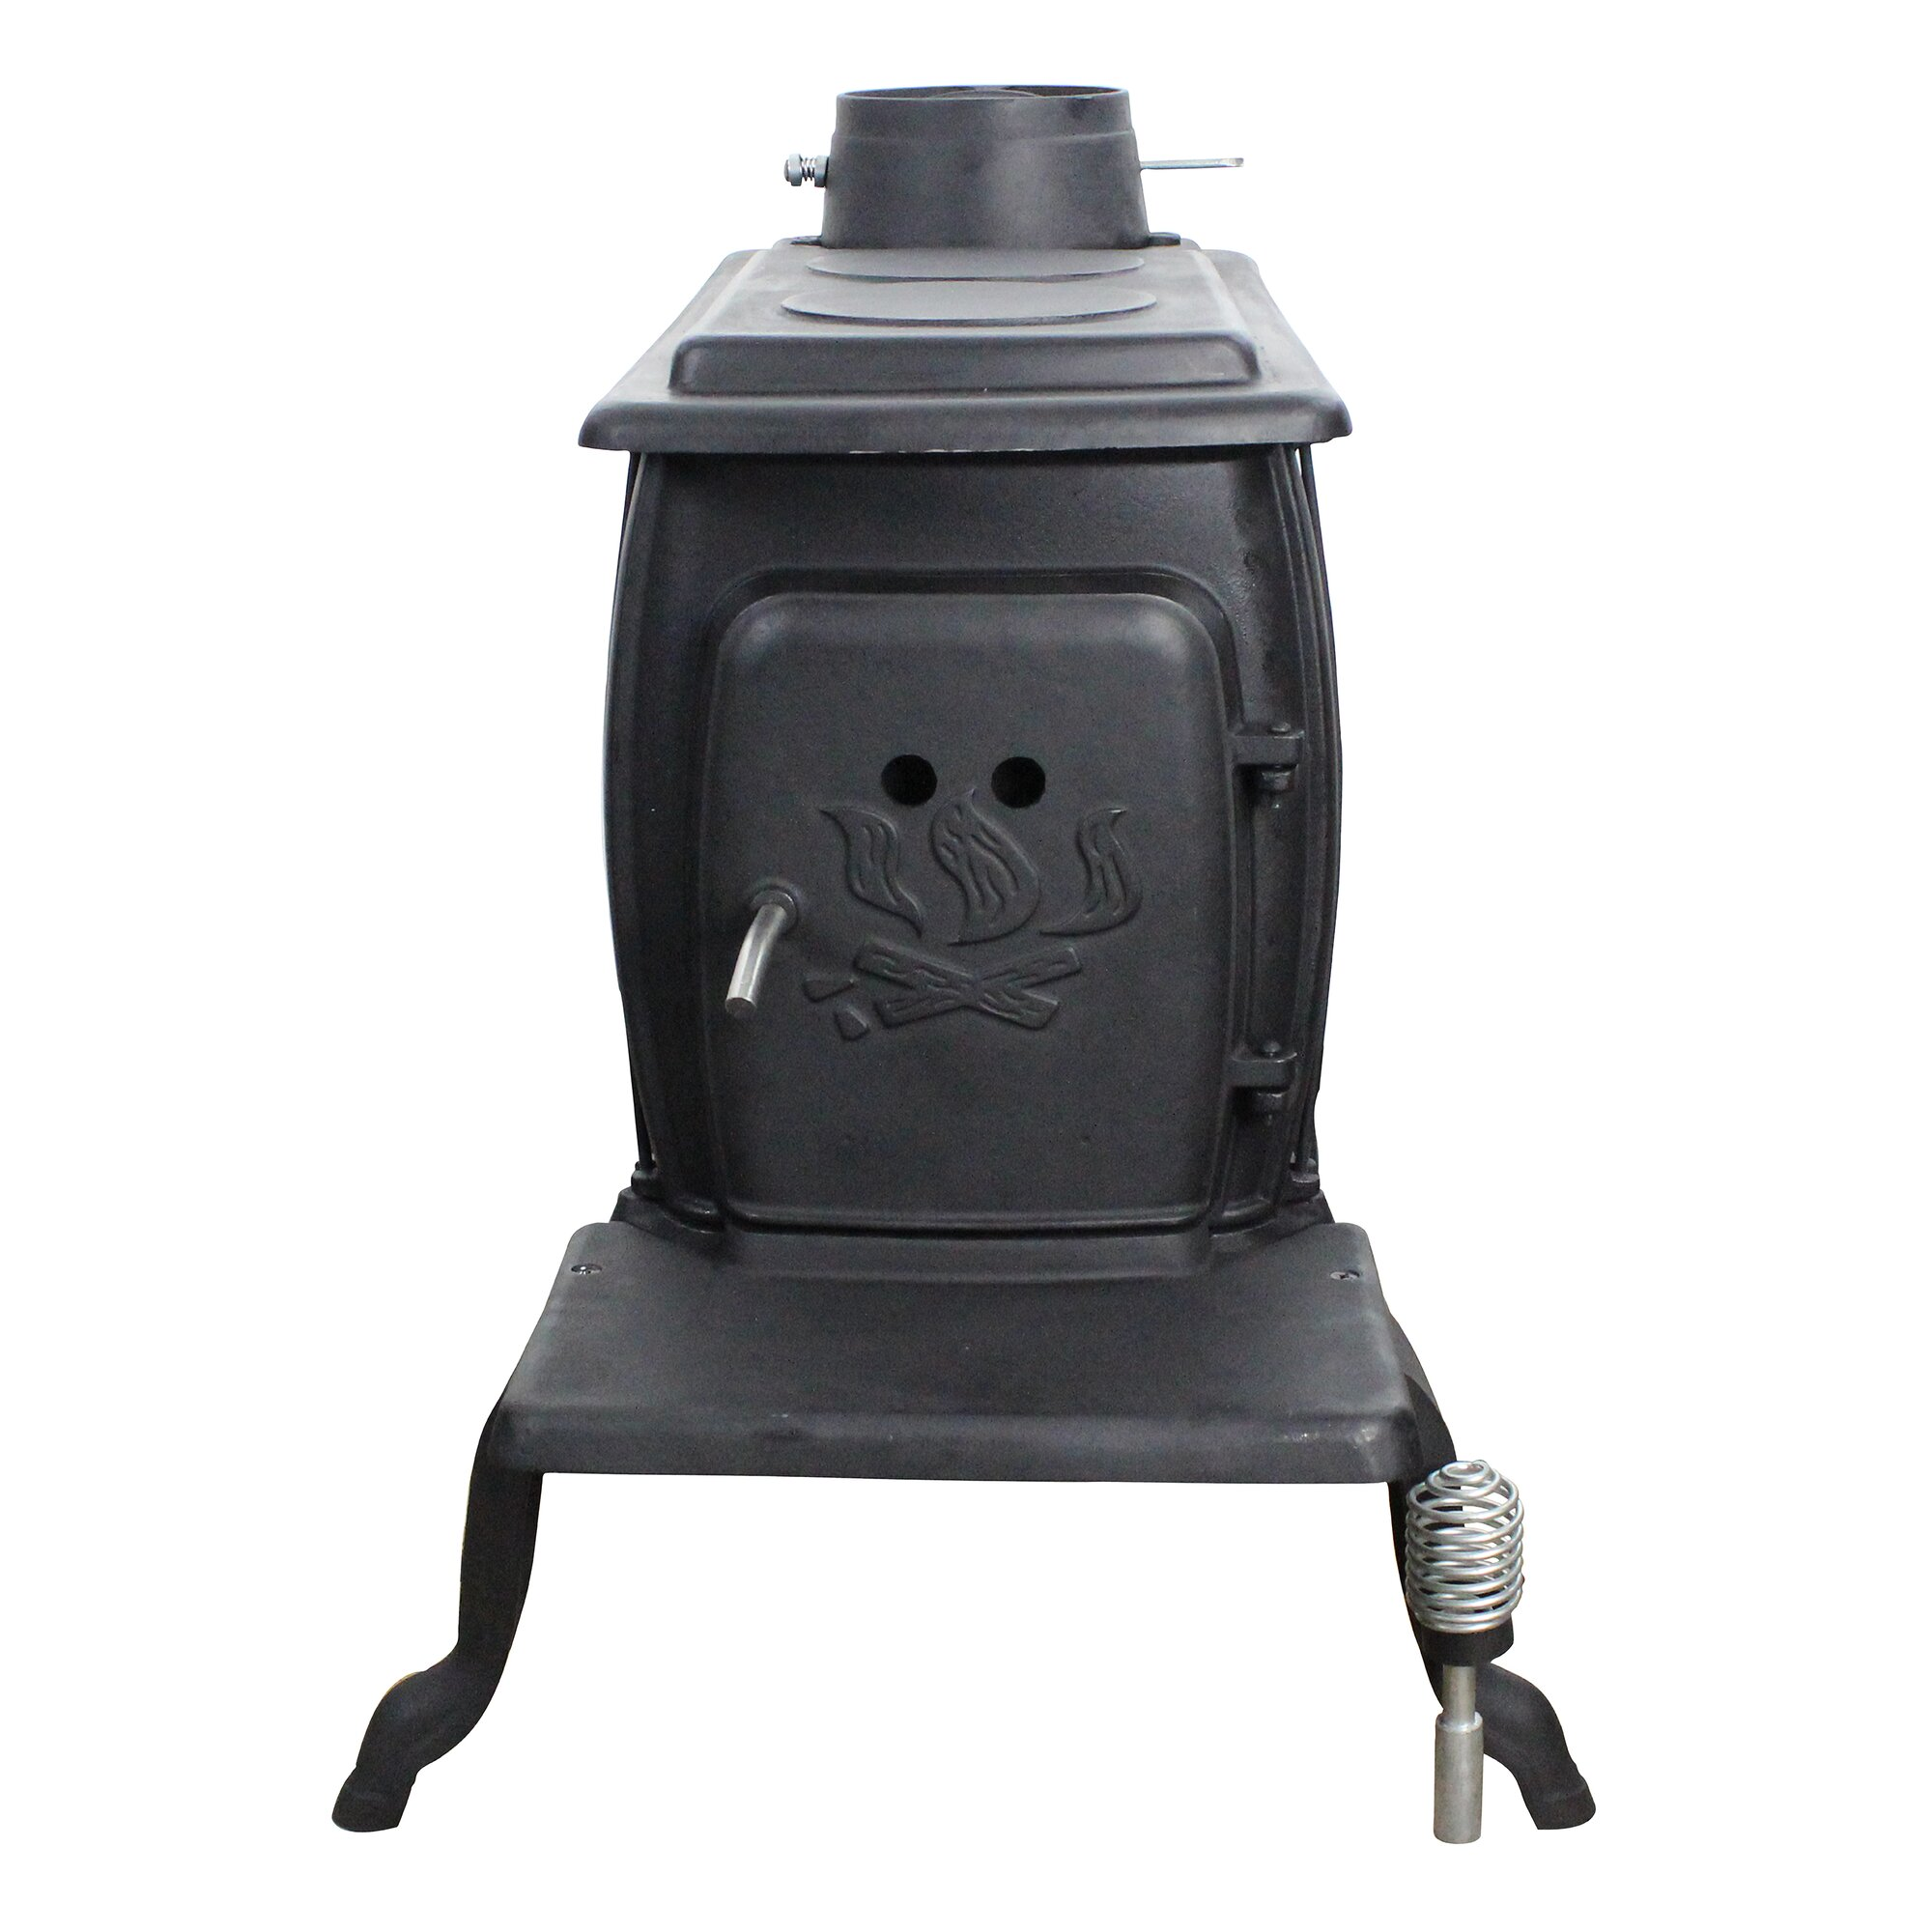 US Stove 900 sq. ft. Direct Vent Wood Stove & Reviews | Wayfair